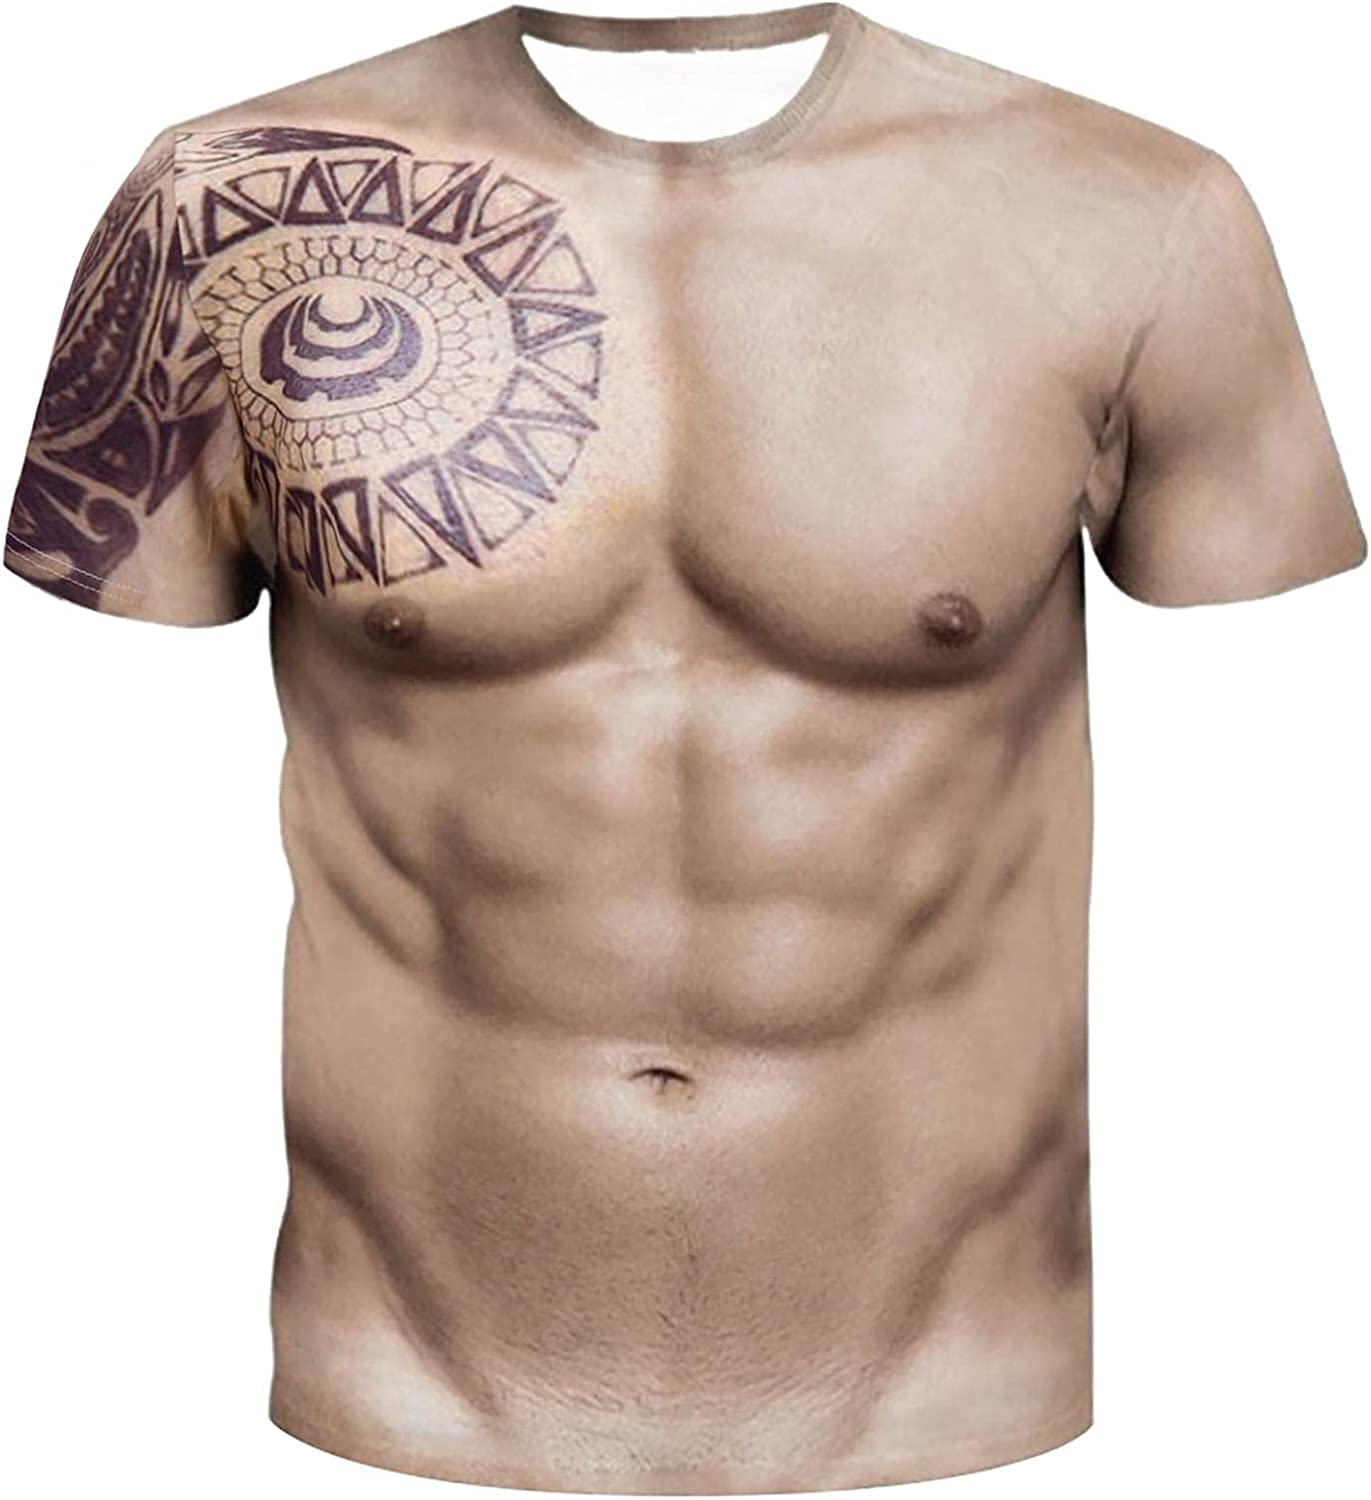 Men's Solid Color Casual Collarless Crewneck Short-sleeve T-shirt 3D Funny Pattern Printed T-Shirt Tops